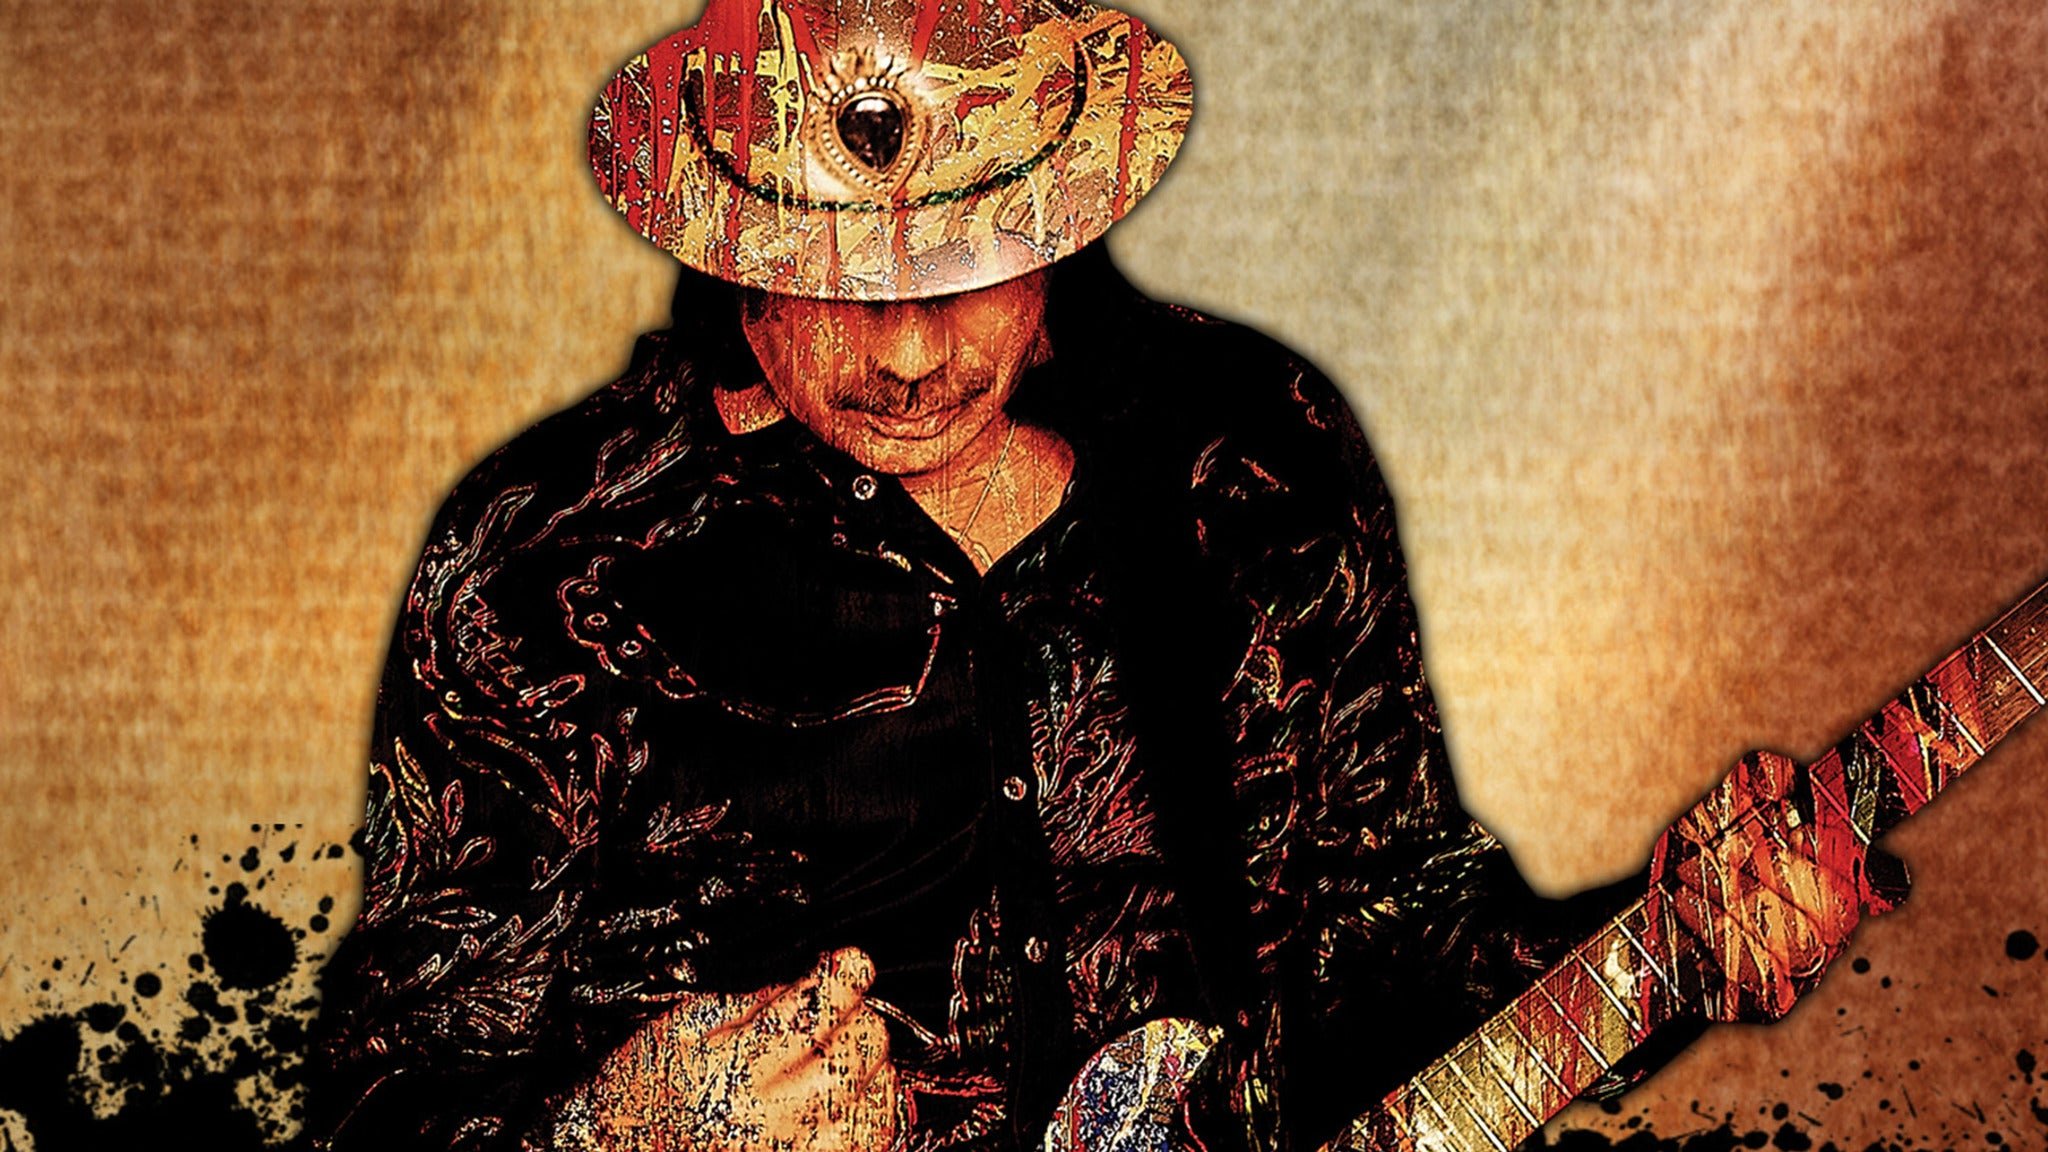 Santana at Amalie Arena